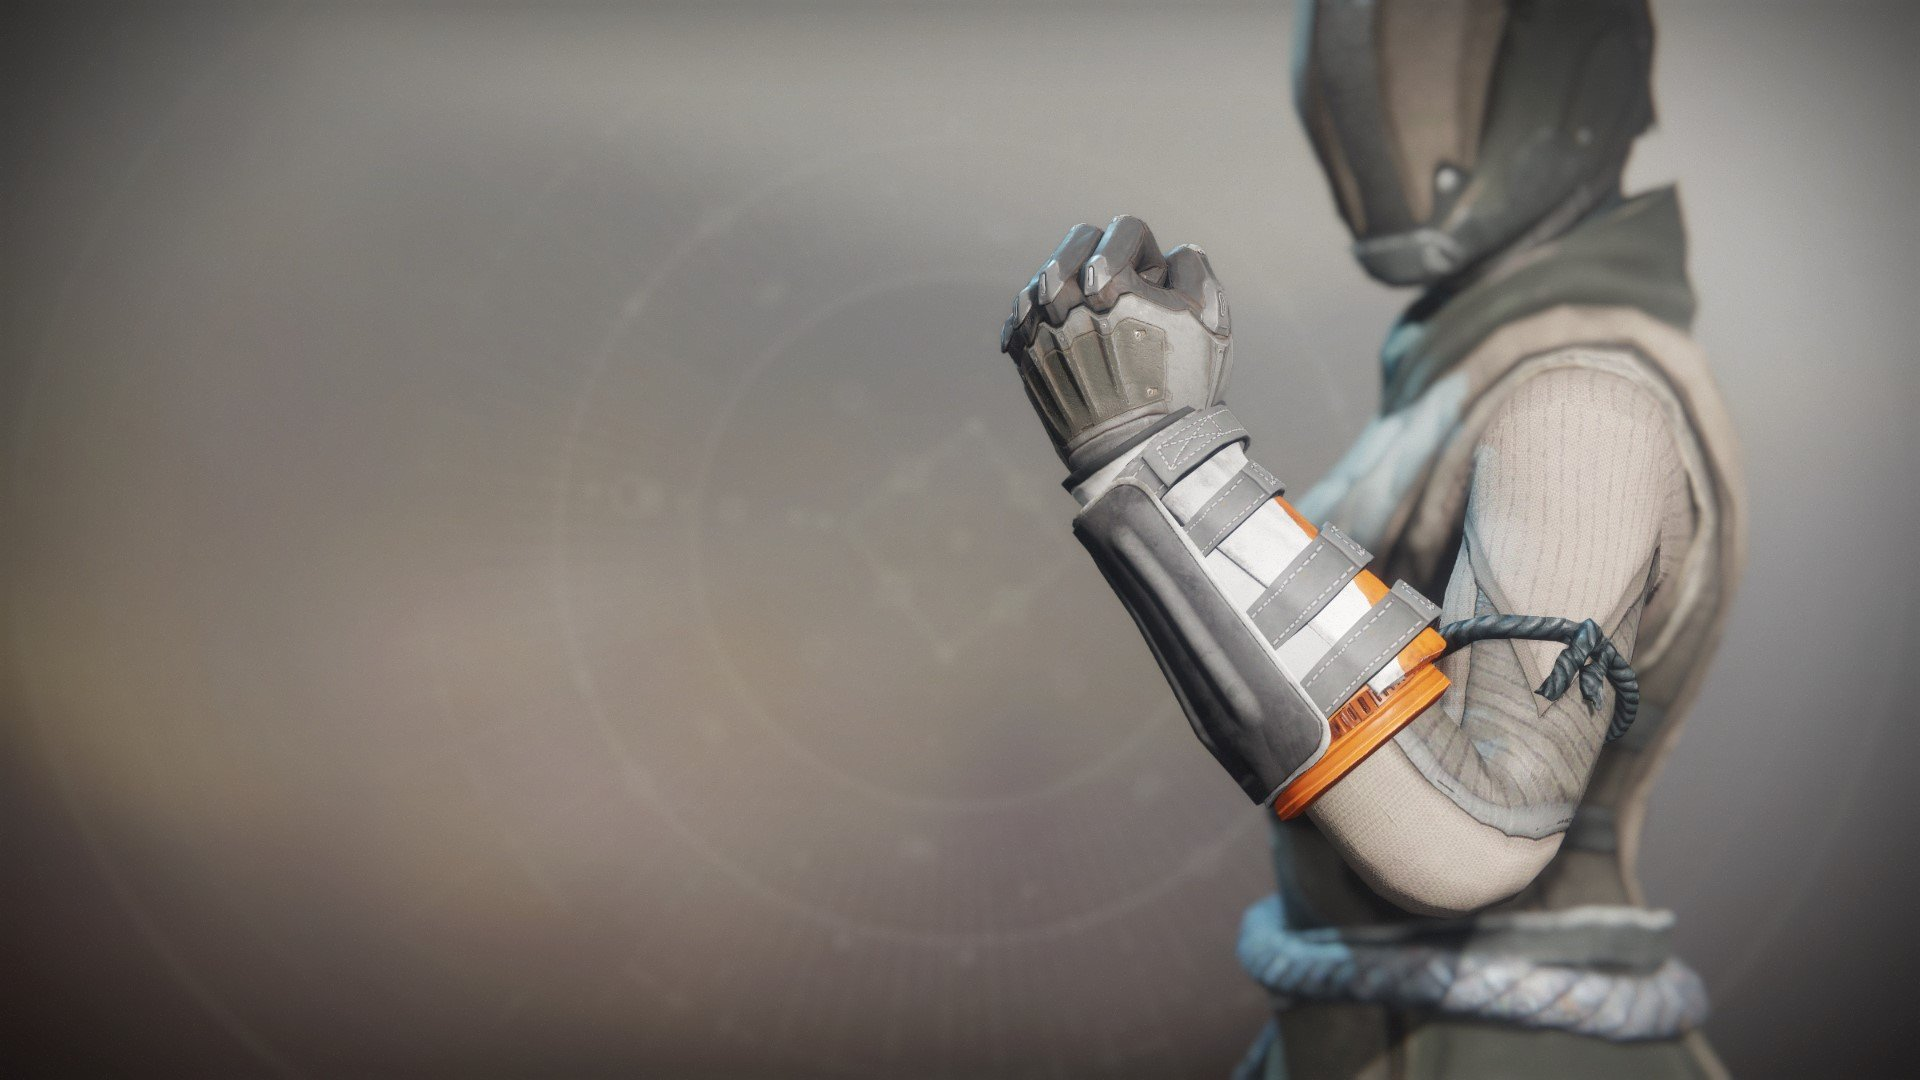 An in-game render of the Steadfast Warlock Ornament.